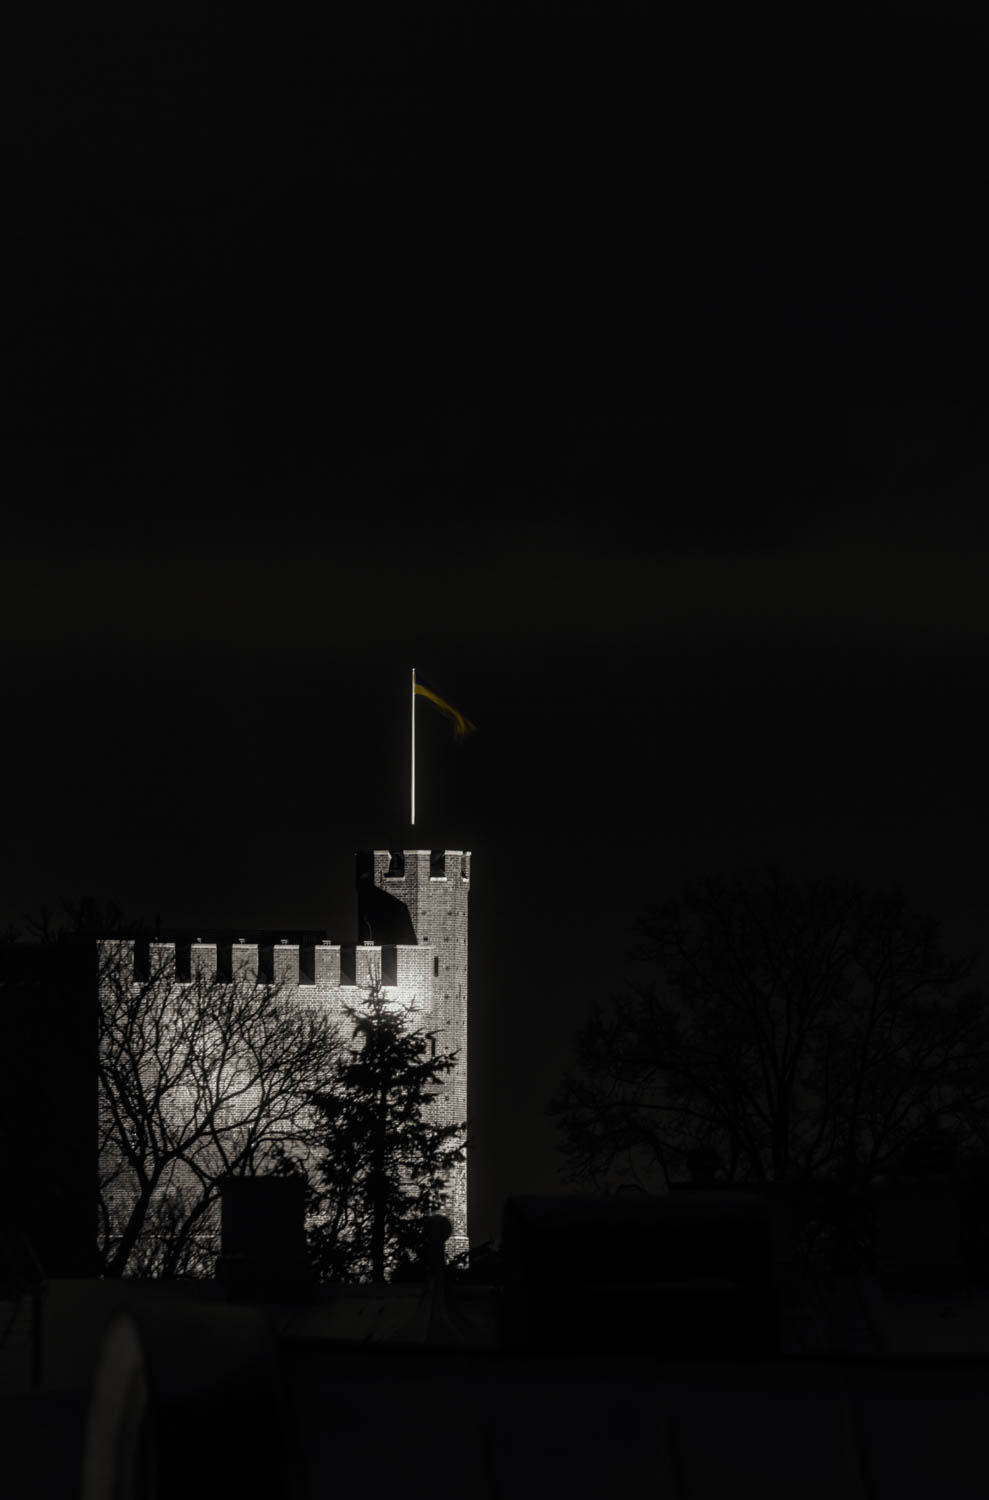 One of the first - Images I ever took since getting a digital camera is this one. It's taken at night of the medieval tower Kärnan in Helsingborg.